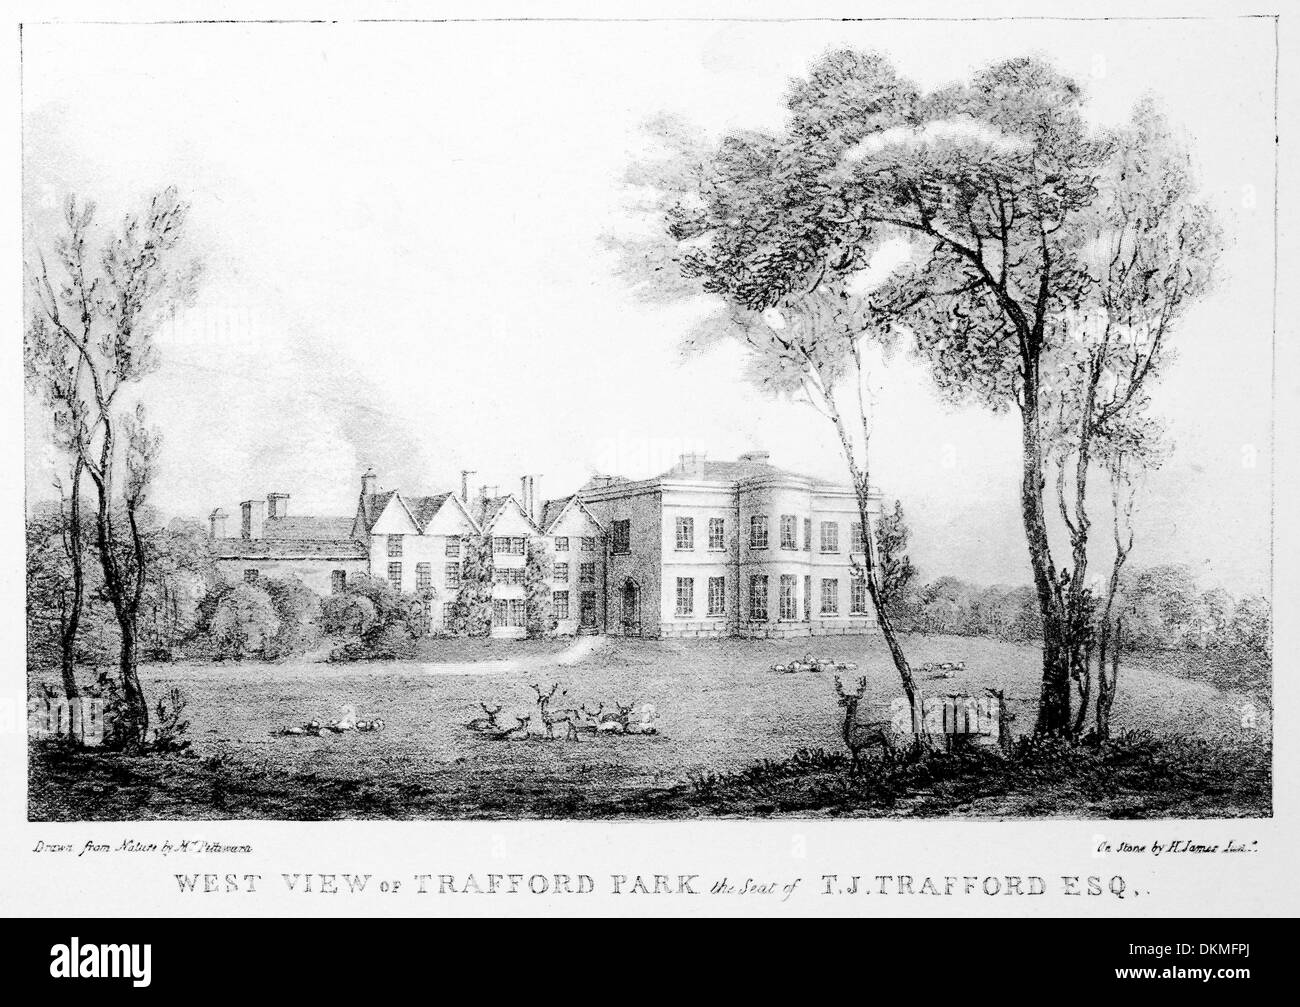 Copy of Lithographic print made in 1820 of Manchester West view of Trafford Park The Seat of T.J. Trafford Esquire - Stock Image